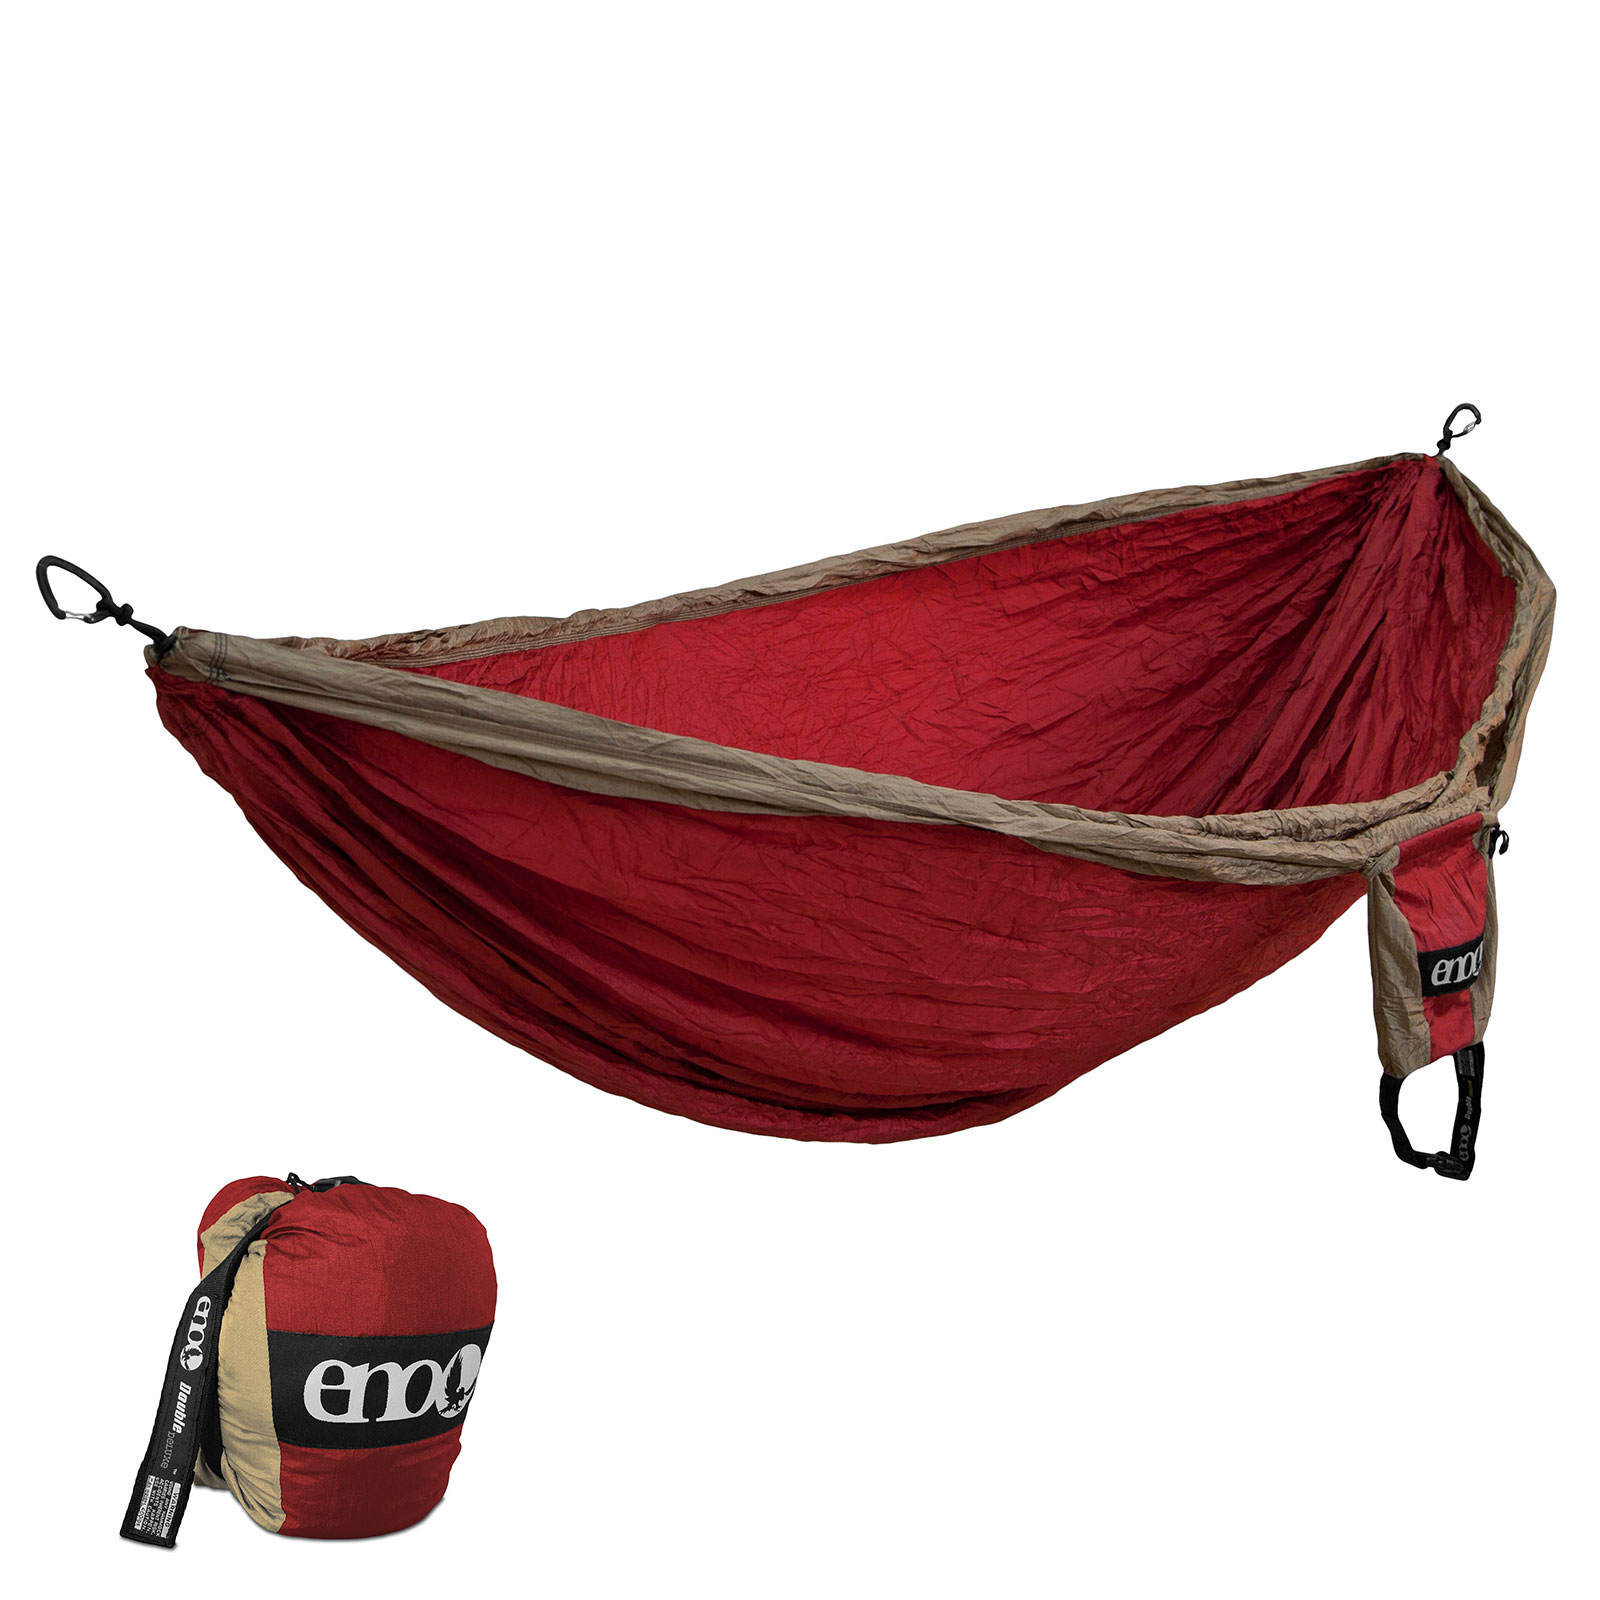 Eno Double Deluxe Onelink Hammock Tent System Guardian Bug